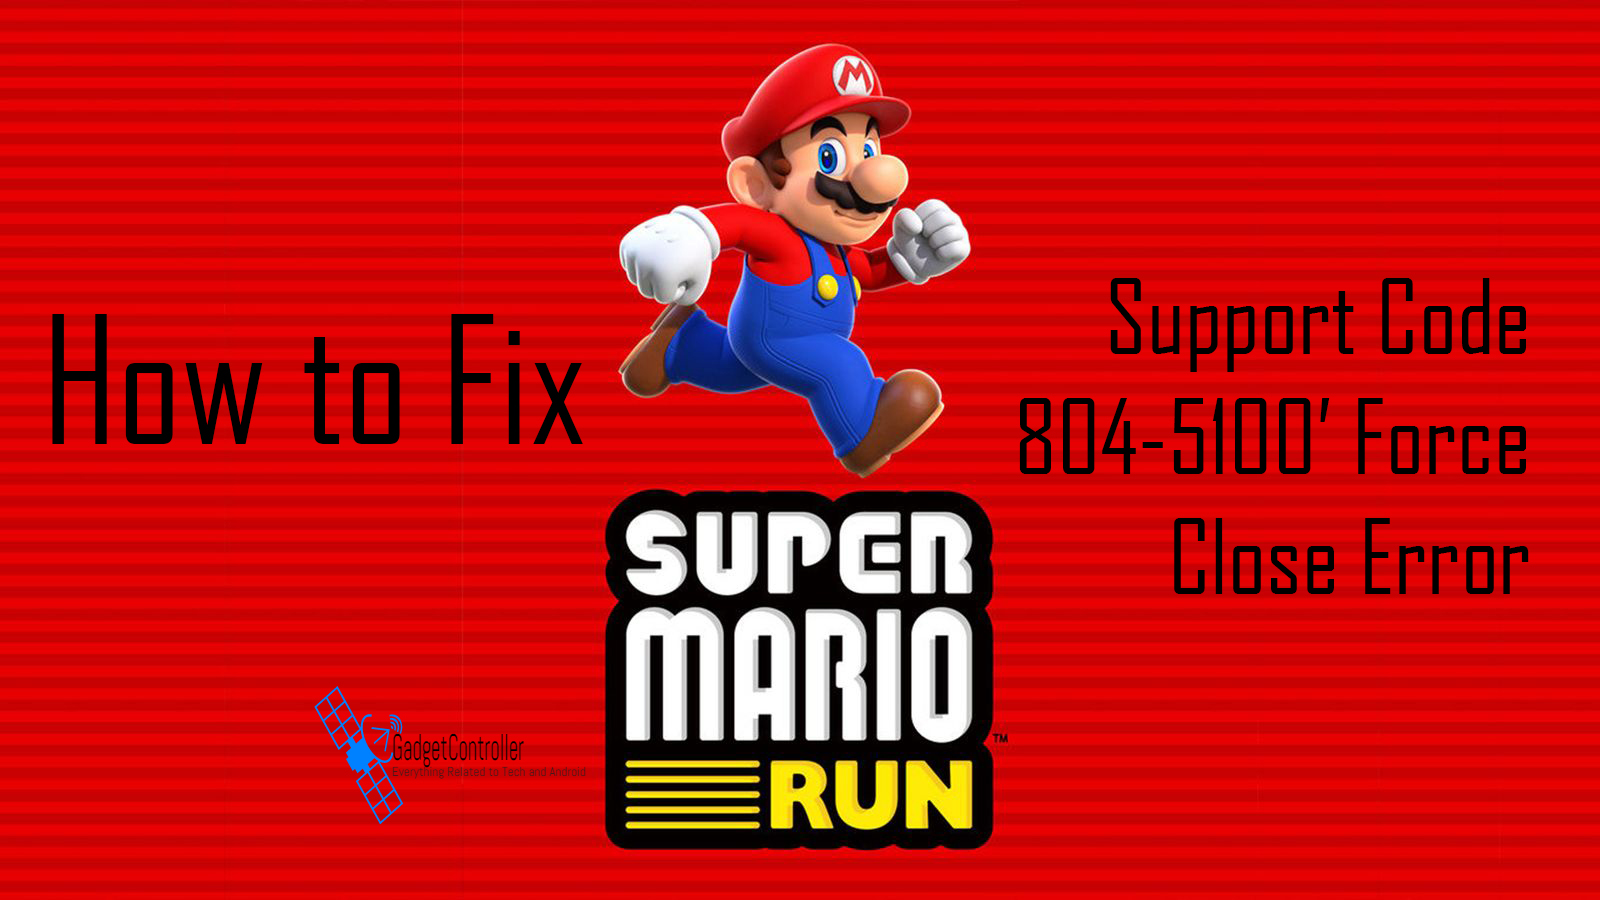 How to Fix Super Mario Run 'Support Code 804-5100' Force Close Error (Fixed)